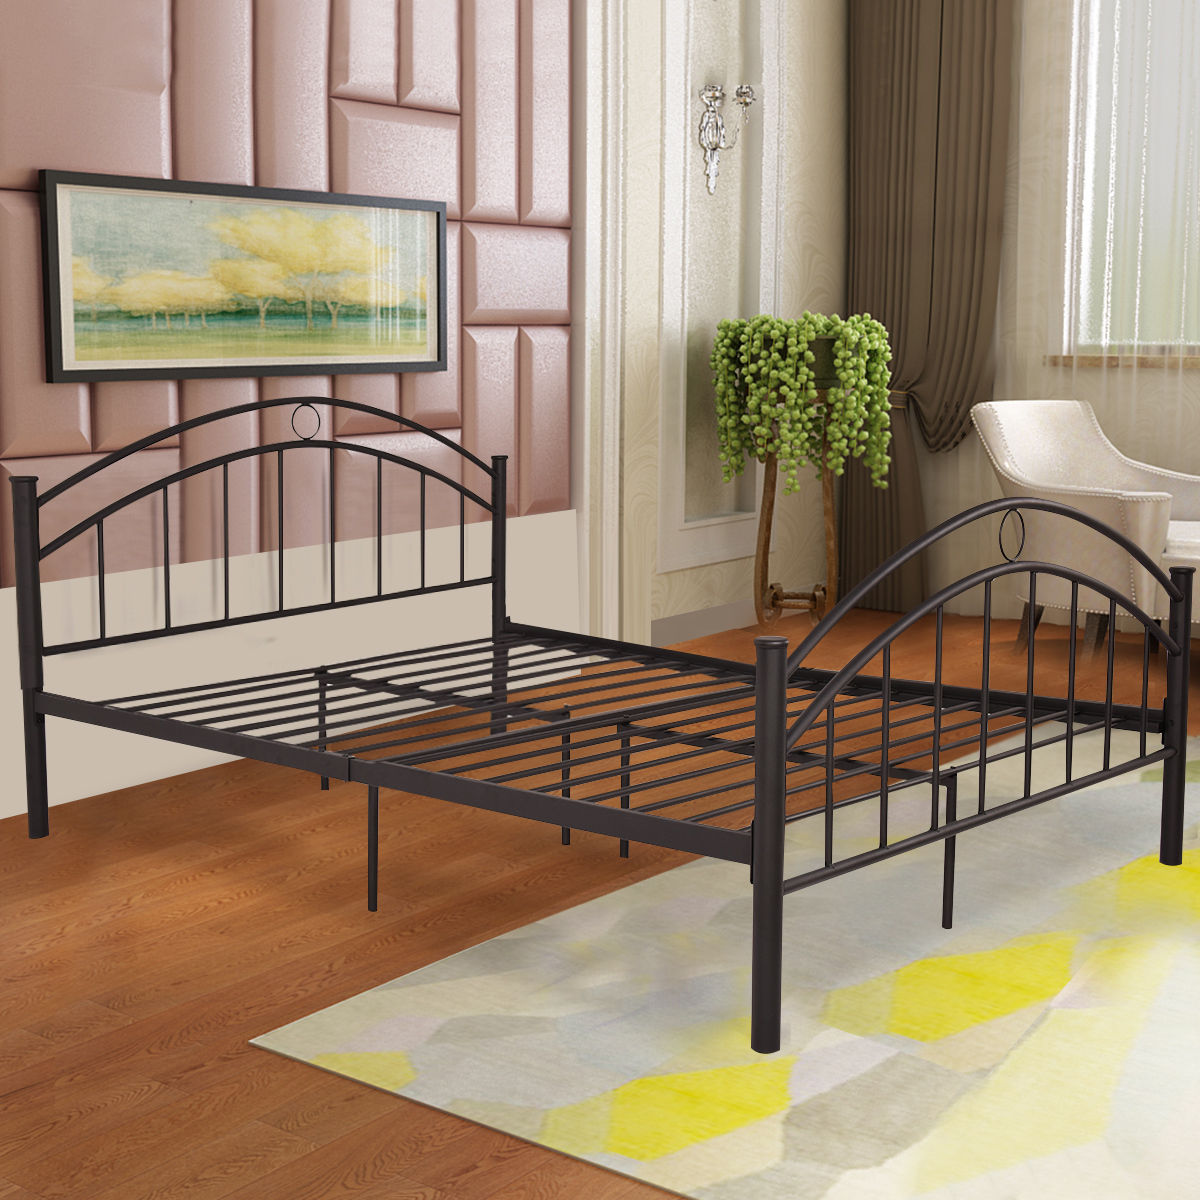 Giantex Black Queen Size Metal Steel Bed Frame Mattress Platform with Headboard Modern Bedroom Furniture HW53980+ canton queen full grey fabric headboard